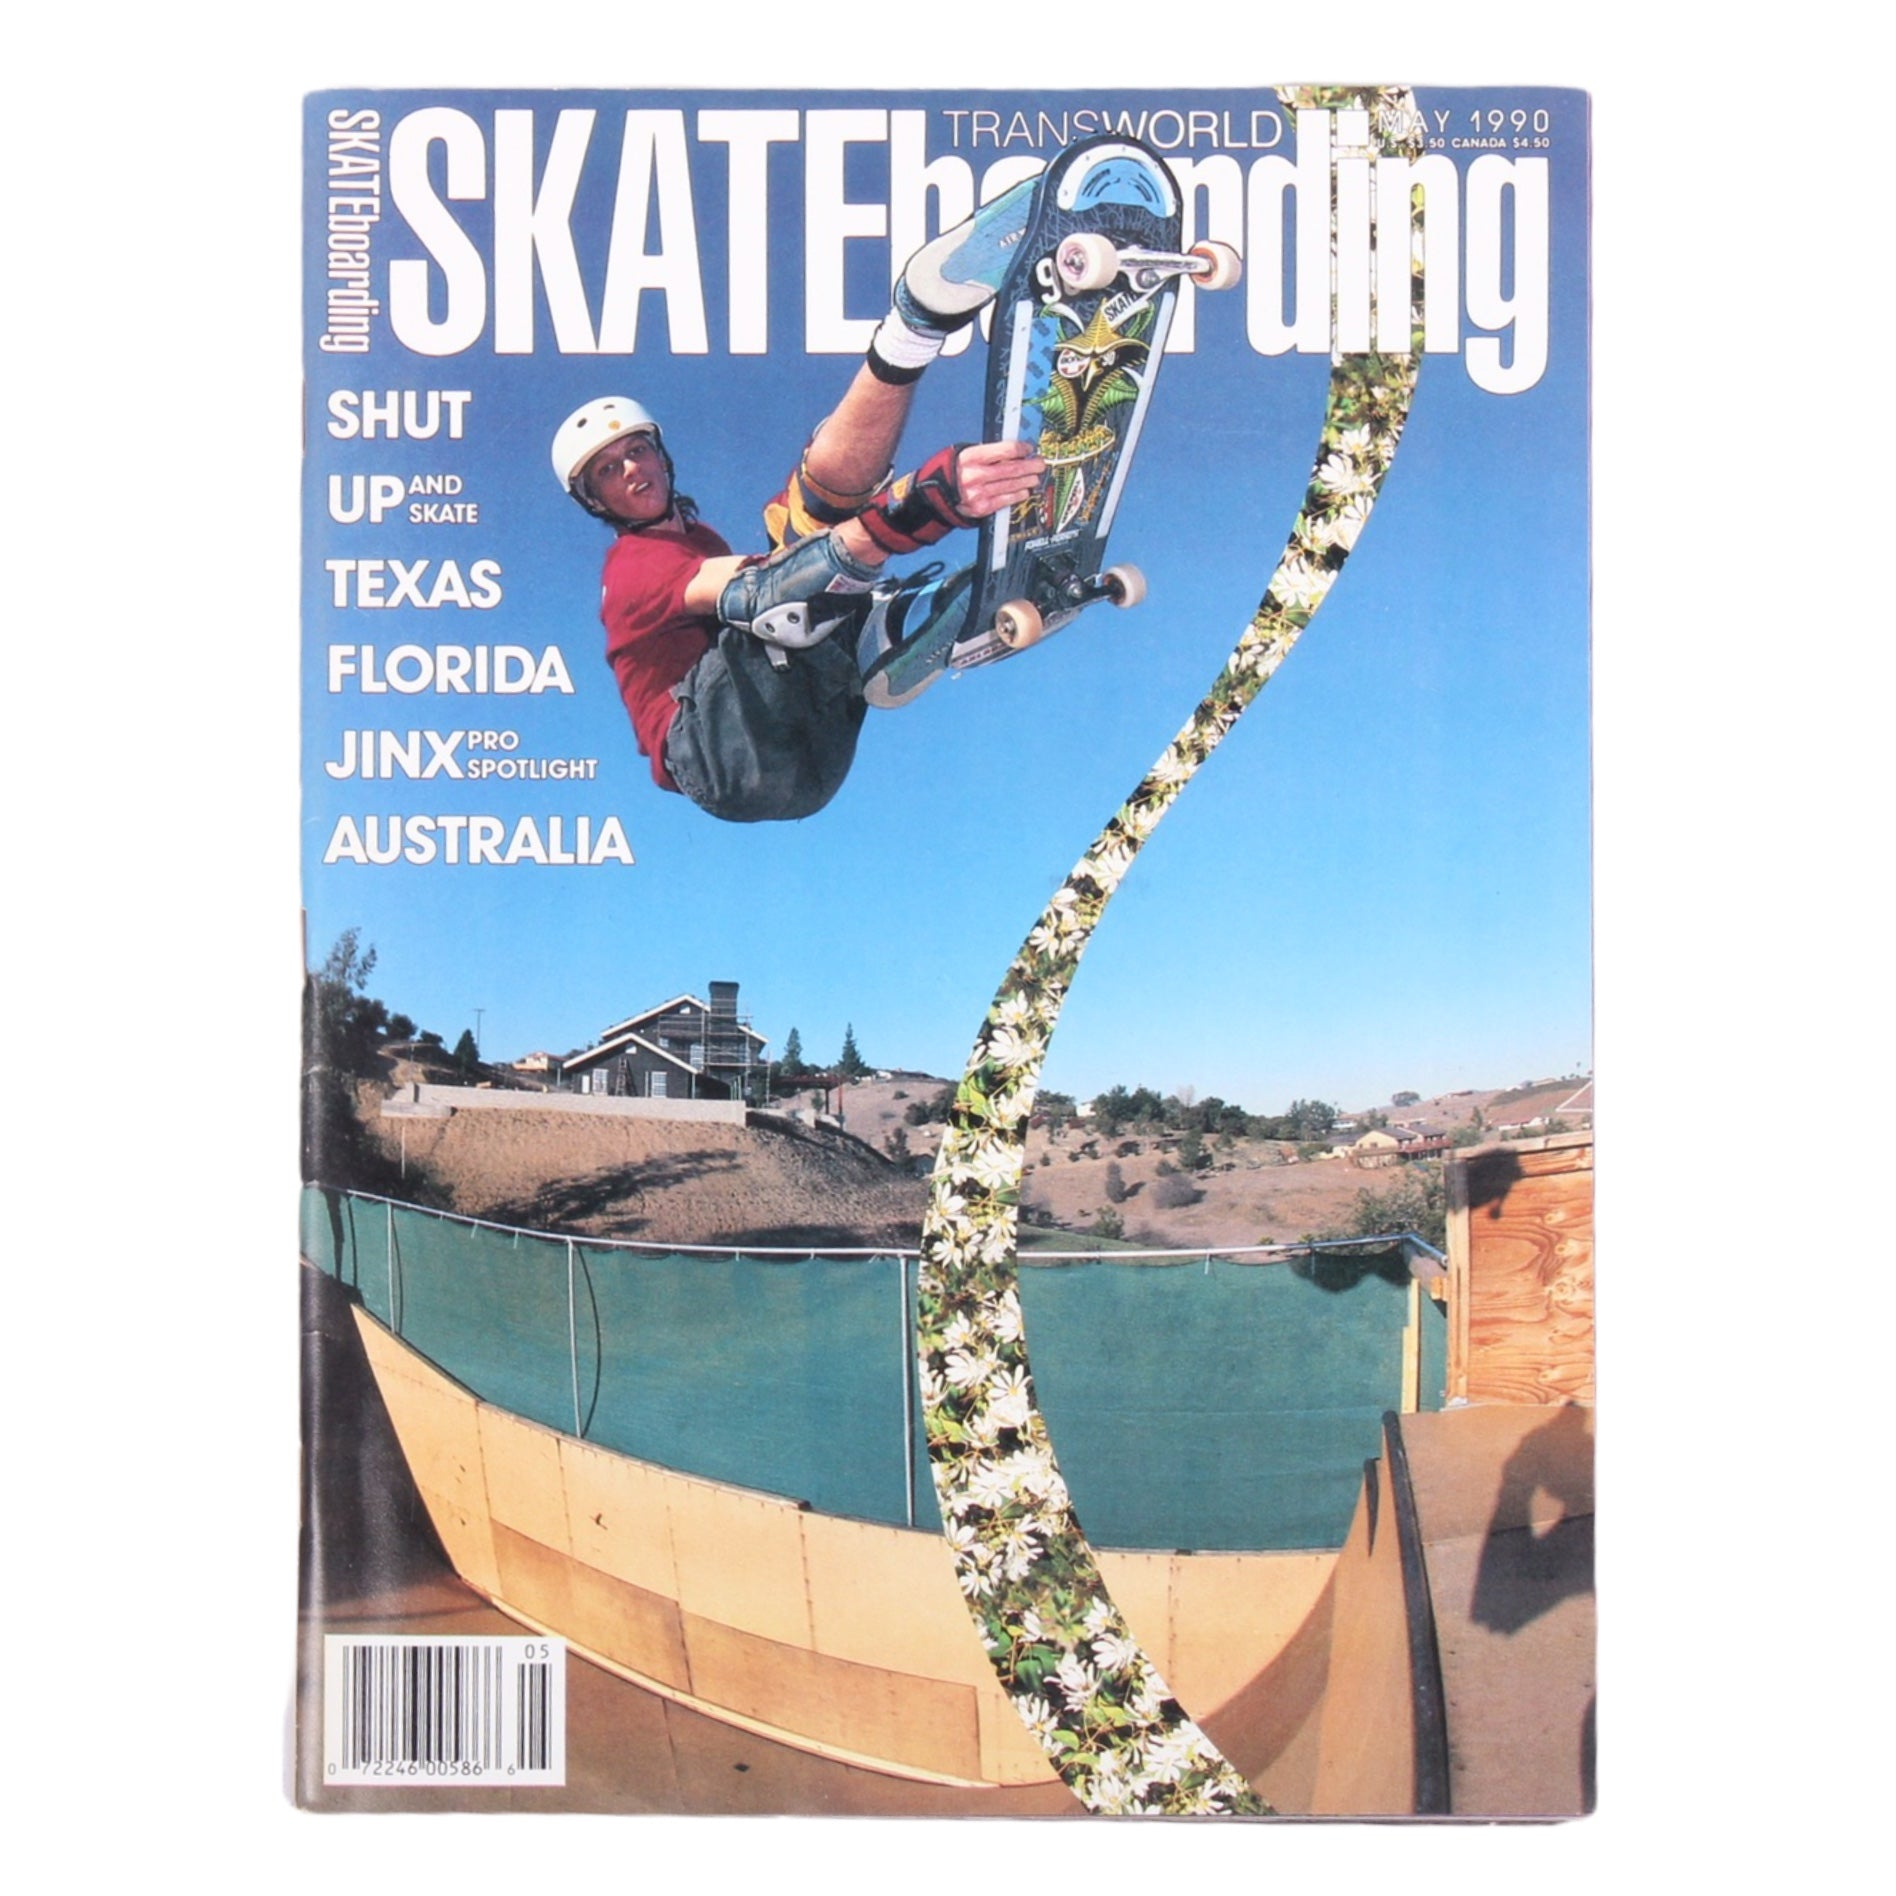 Overripe Transworld Skateboarding Magazine TWS May 1990